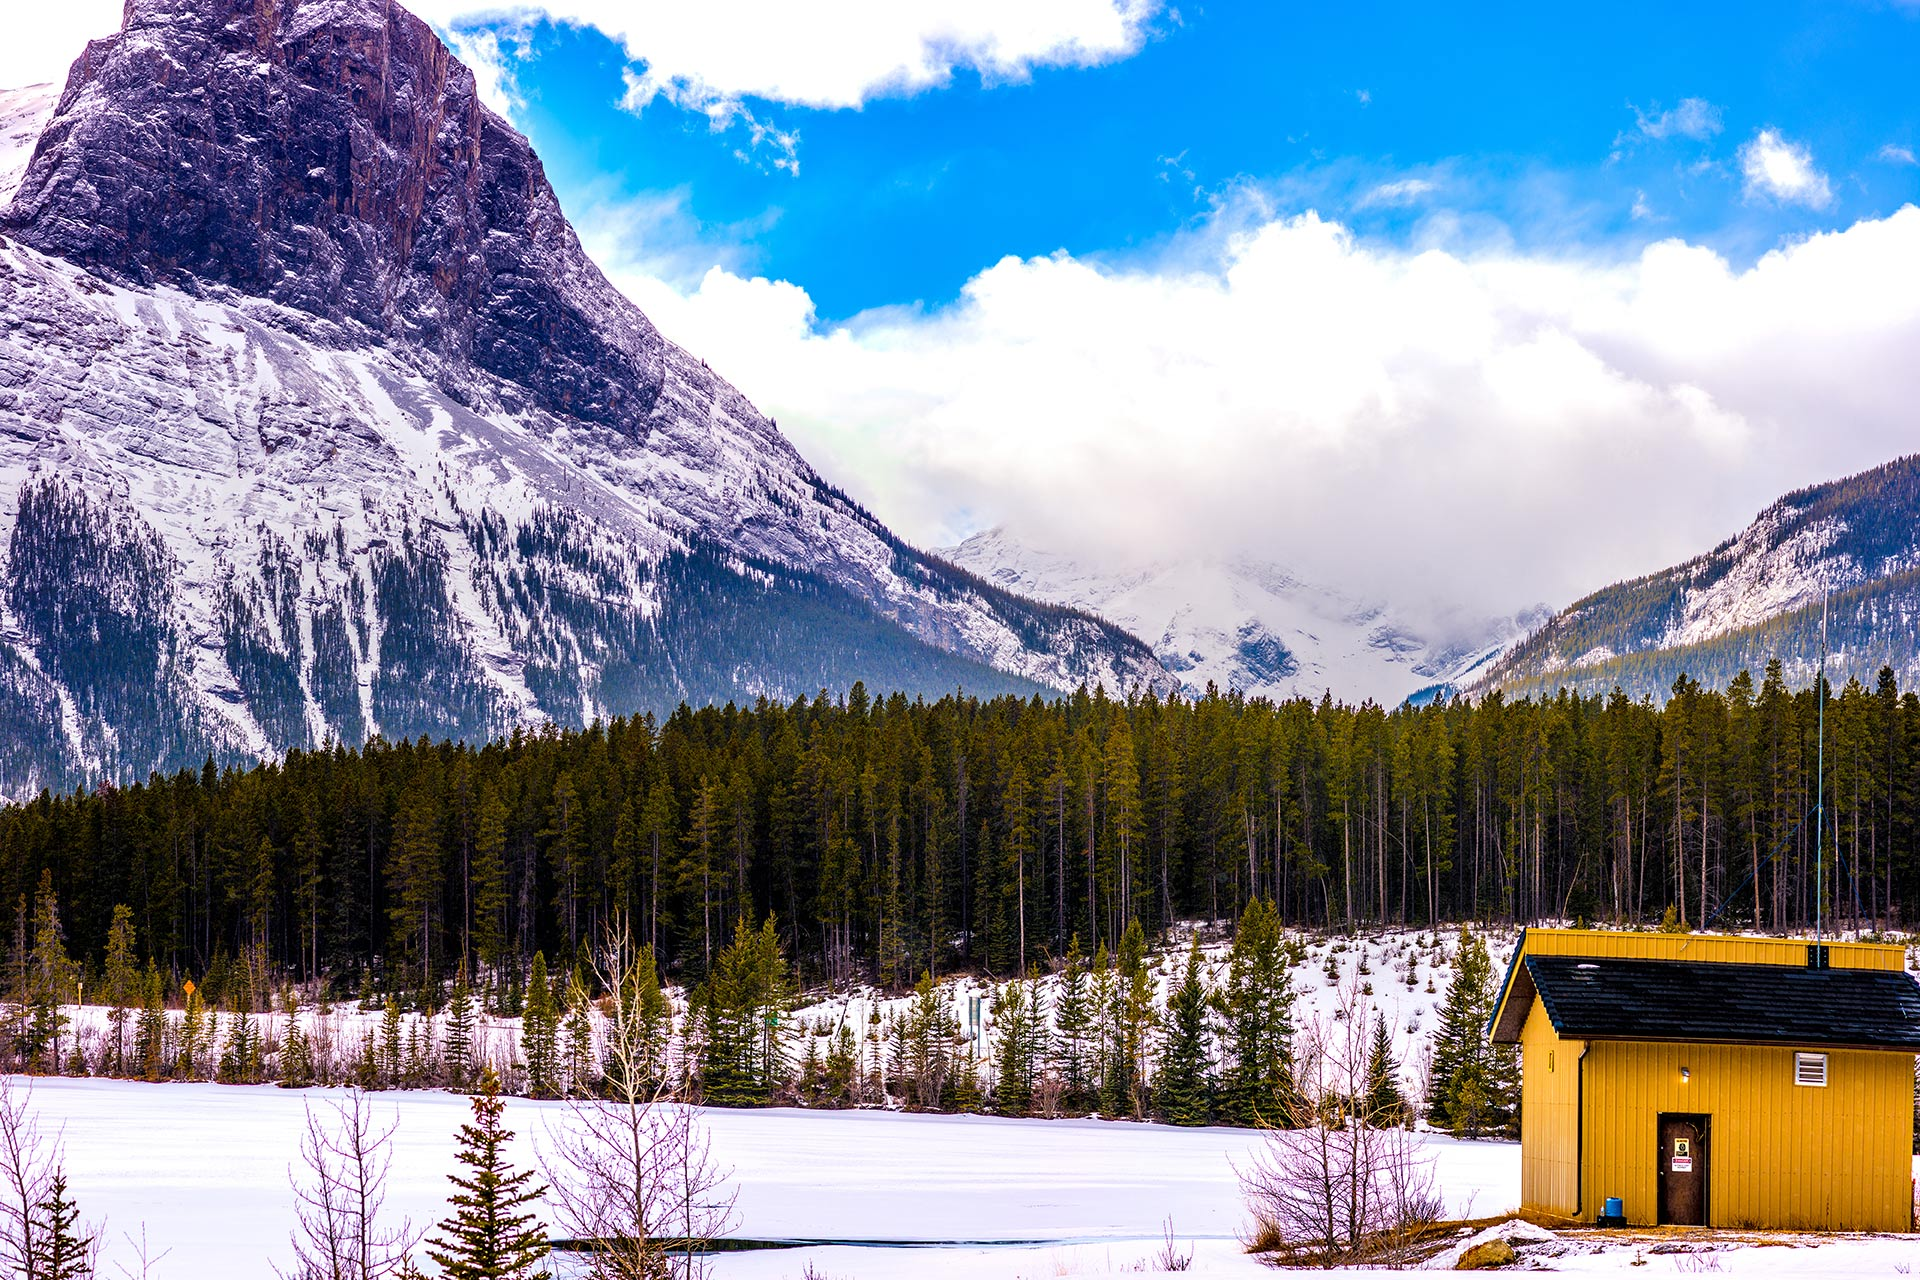 Banff National Park in Canada in the winter.